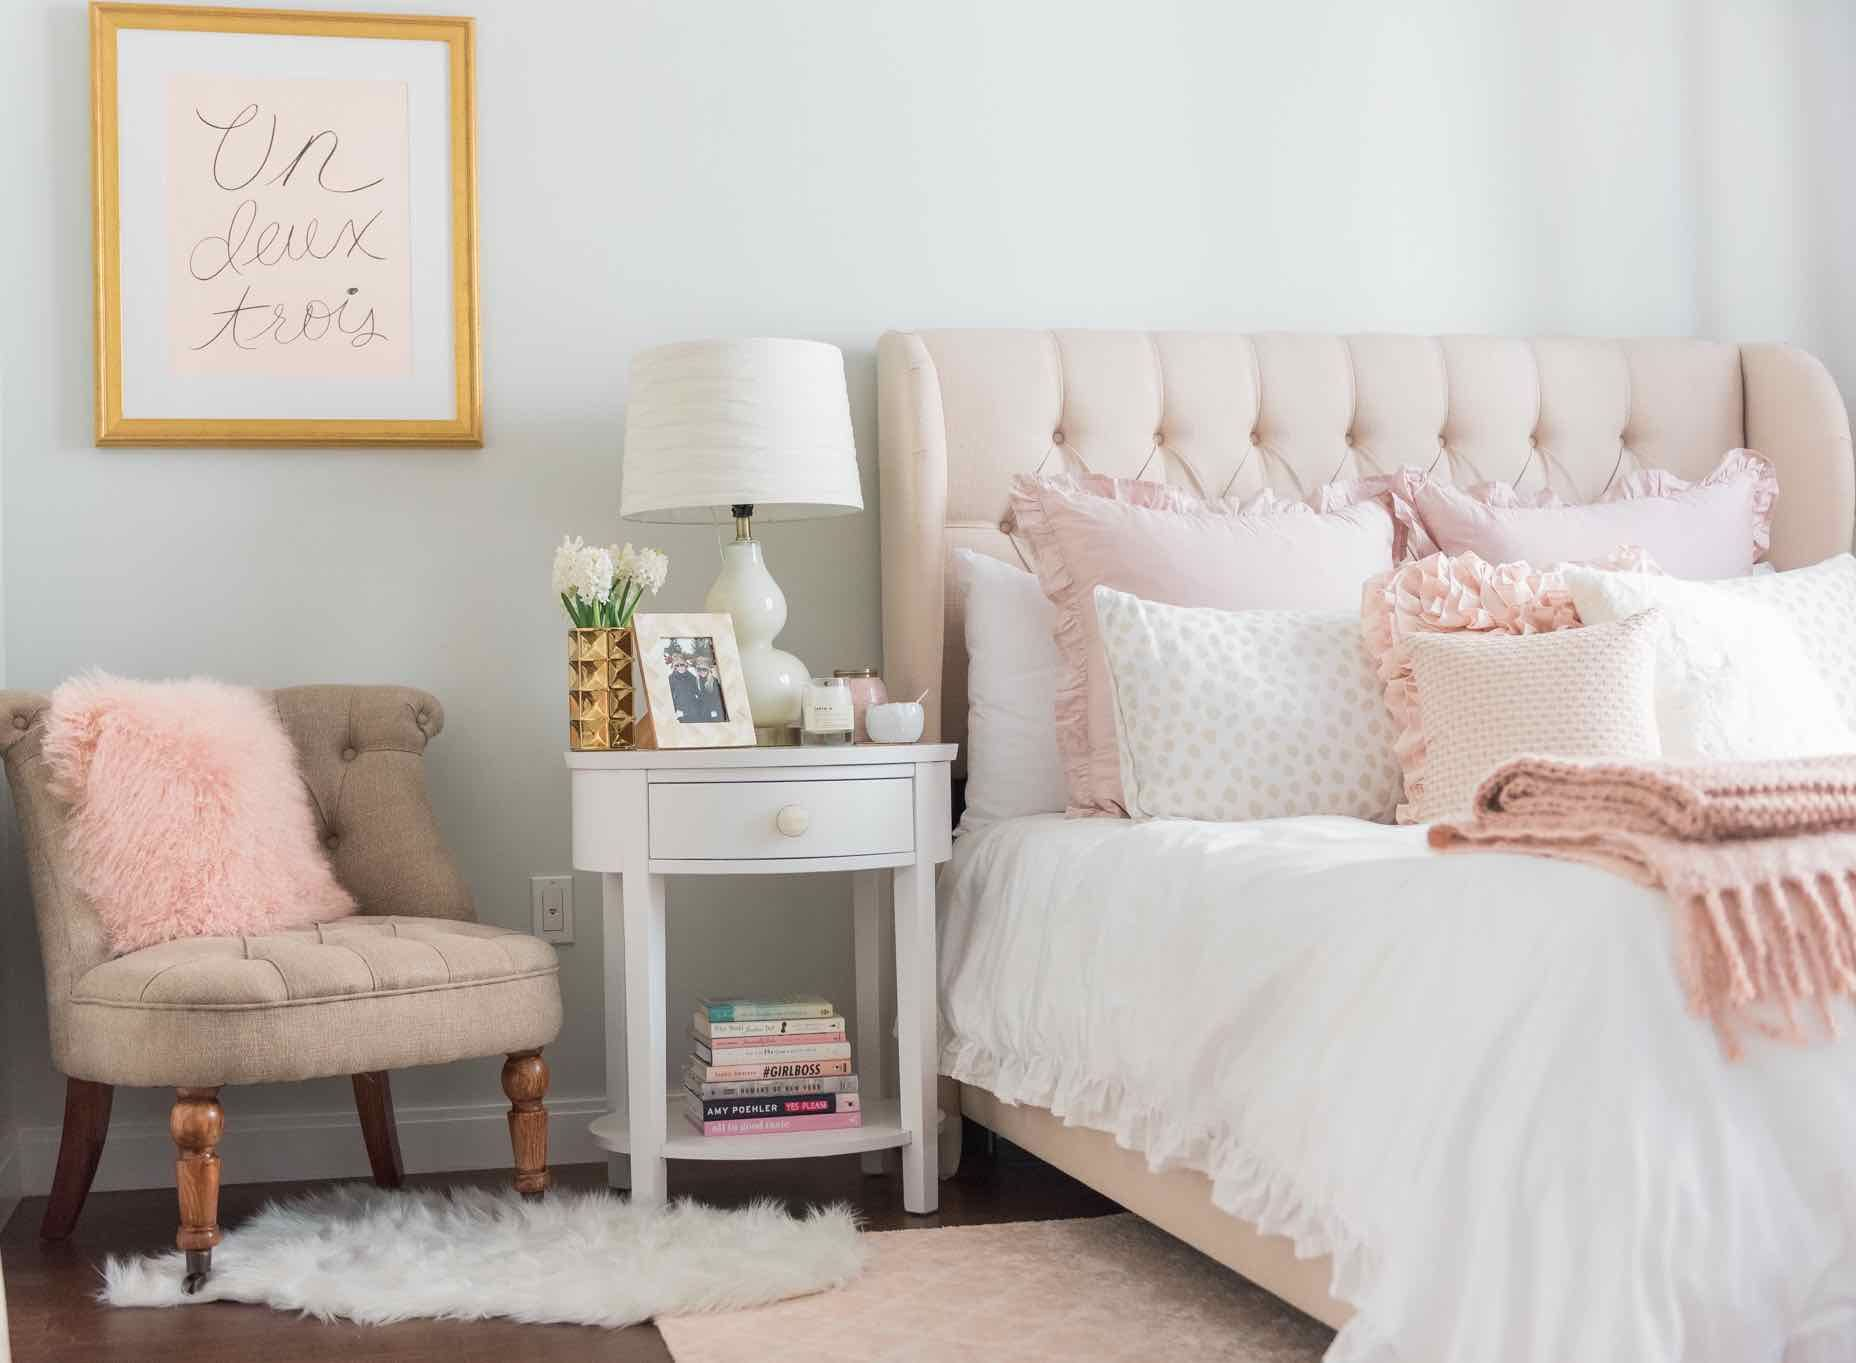 Ice Cream You Ve Been So Darn Good To Us That We Couldn T Help But Reminisce On All Of The Delightful Si Pink Bedroom Decor Light Pink Bedrooms Pink Headboard